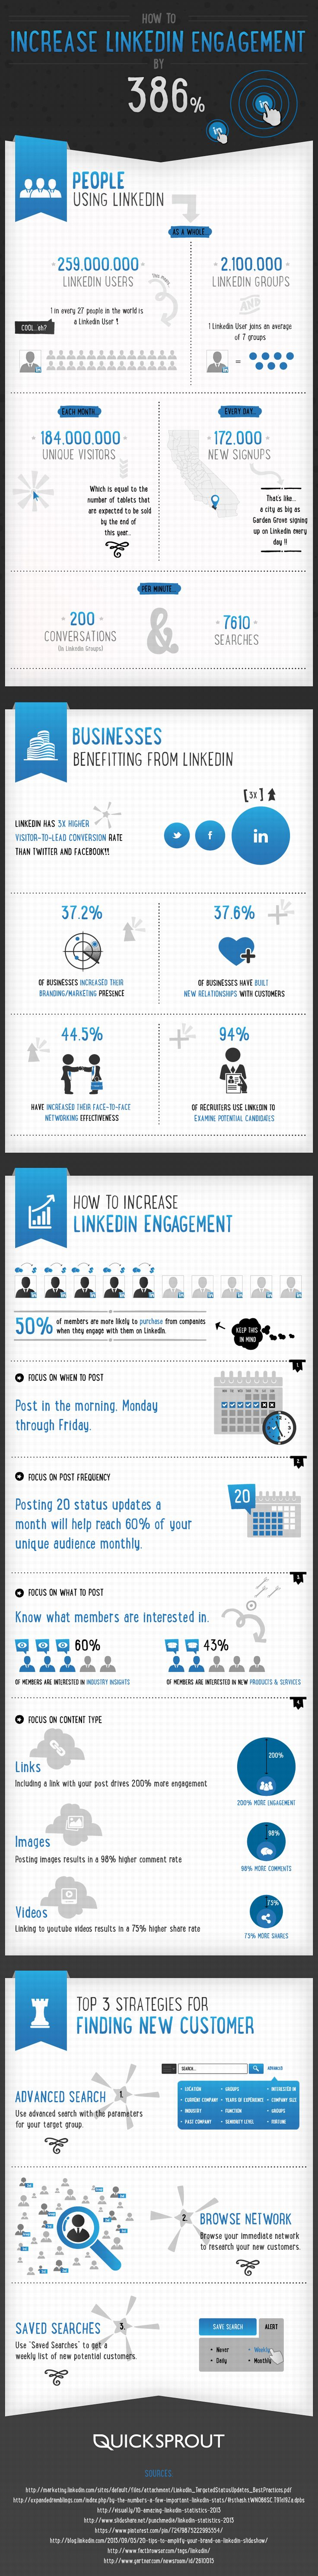 How to Increase Your #LinkedIn Engagement by 386%